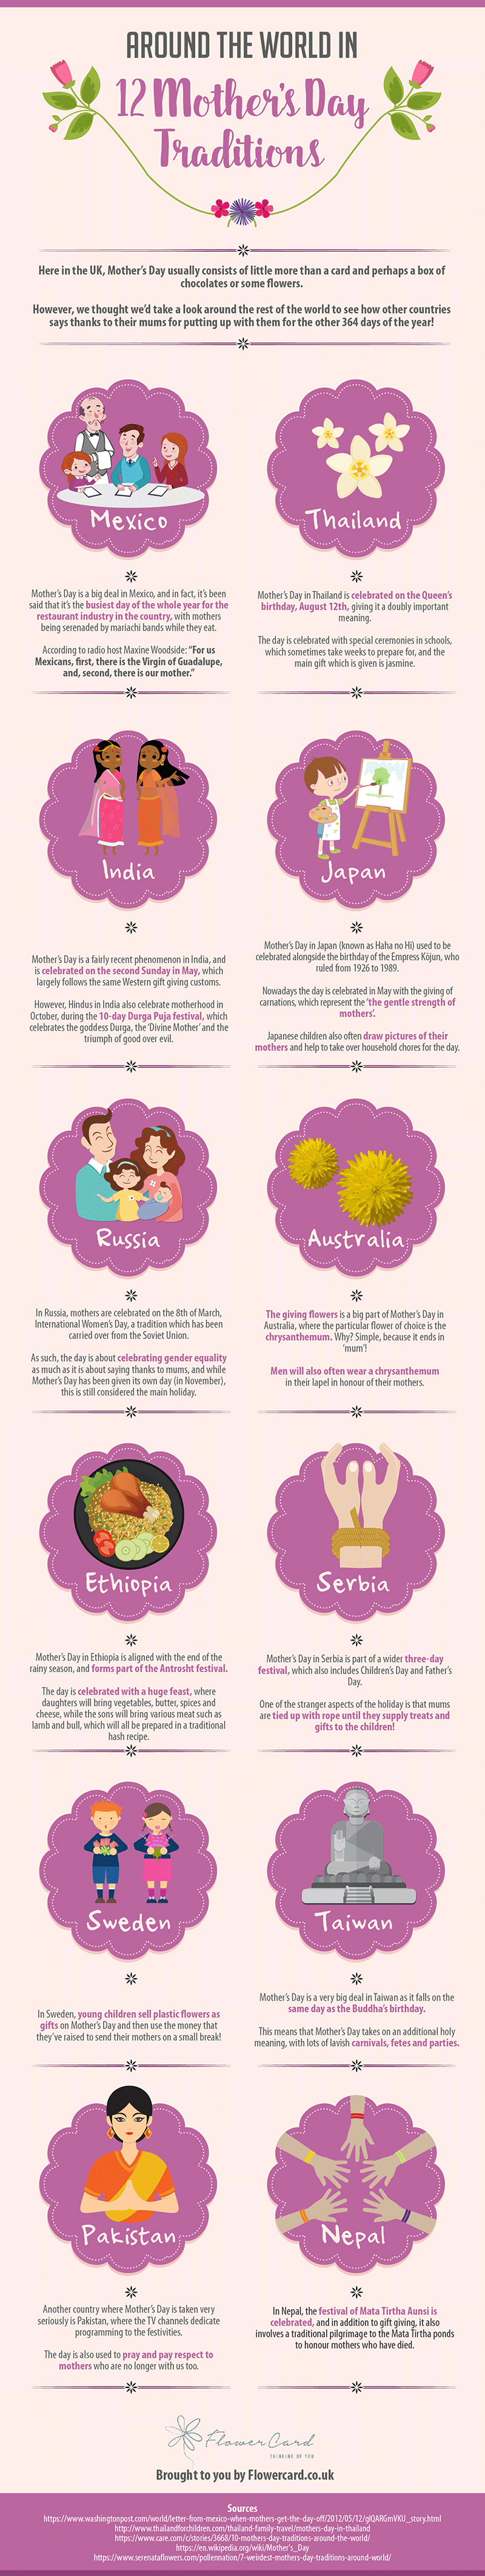 12 Mother's Day traditions from around the world